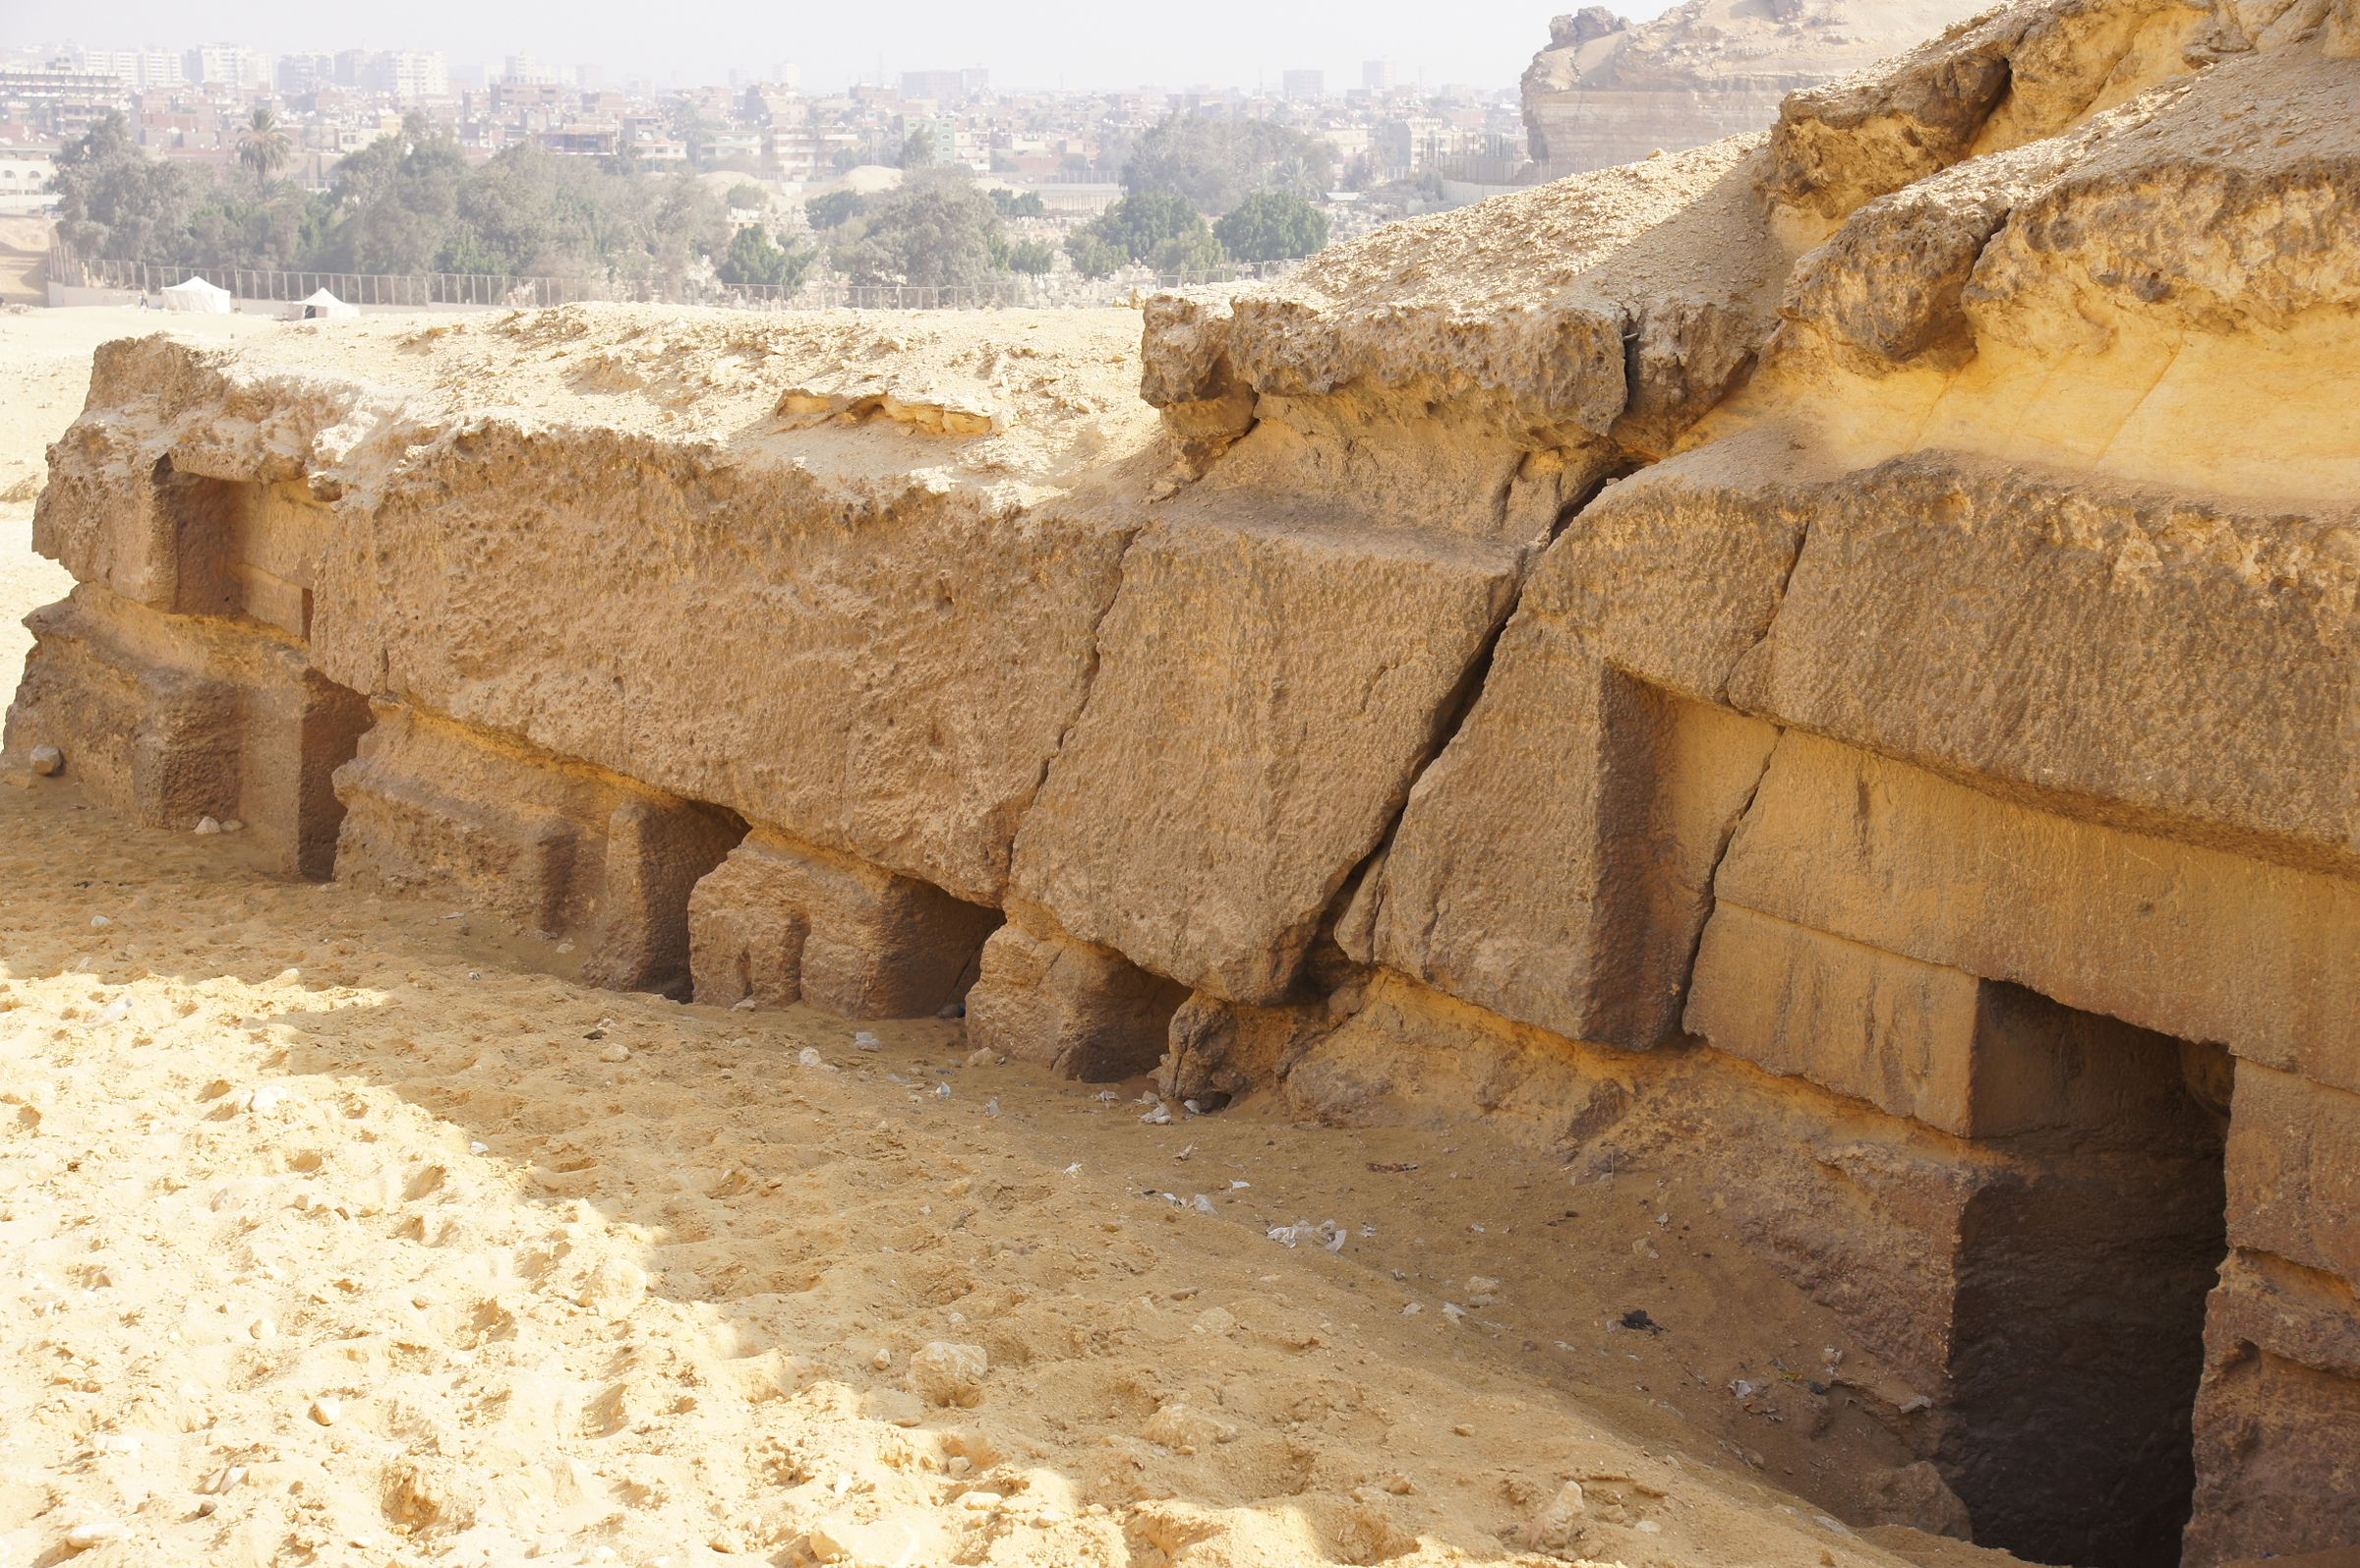 Central Field (Hassan): Site: Giza; View: G 8034, G 8036, G 8038, G 8040, G 8042